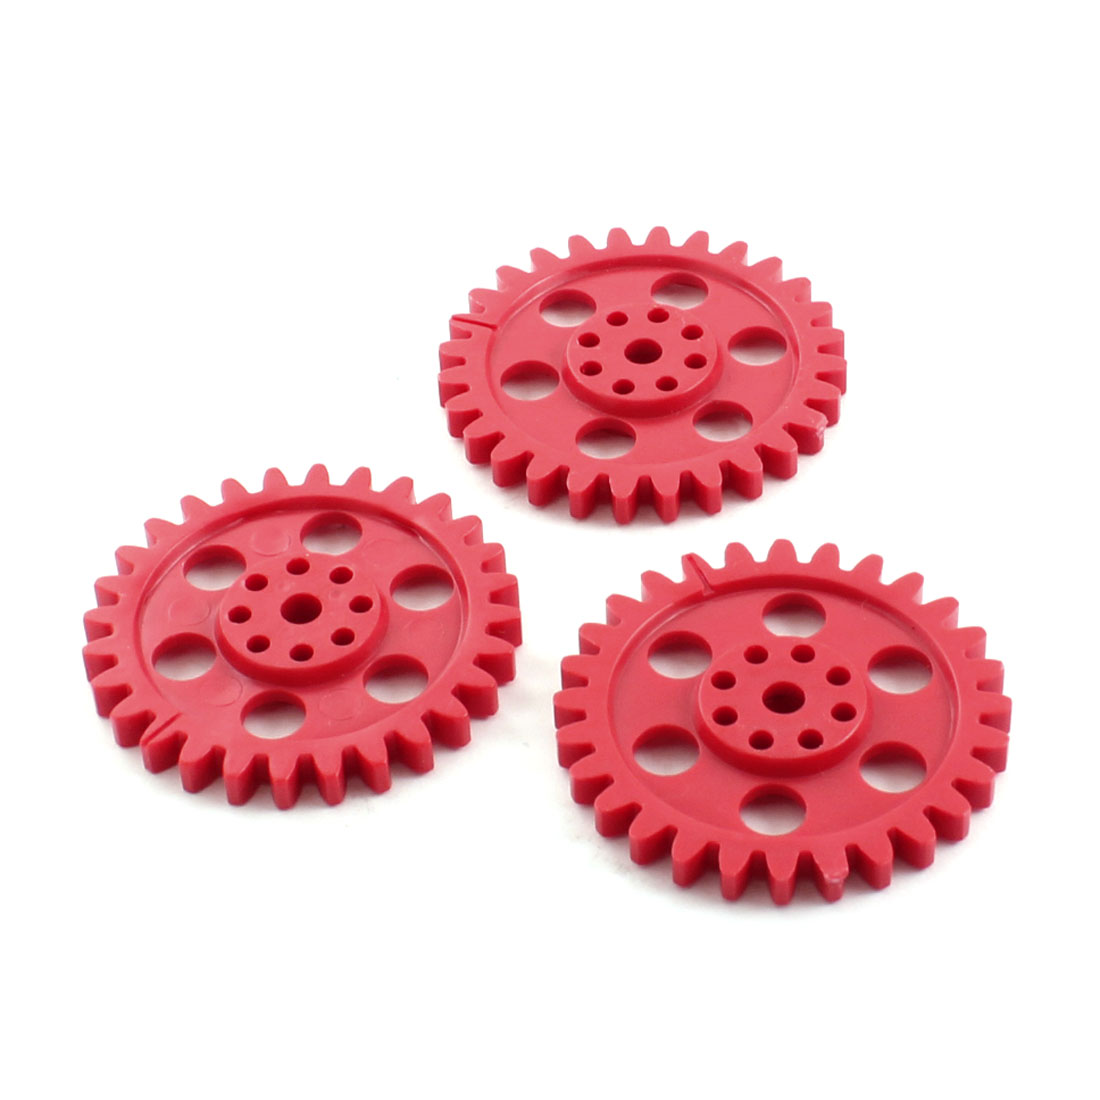 Electric Model Motor Red Plastic 28 Teeth Gear Wheel 54mmx6.5mm 3 Pcs